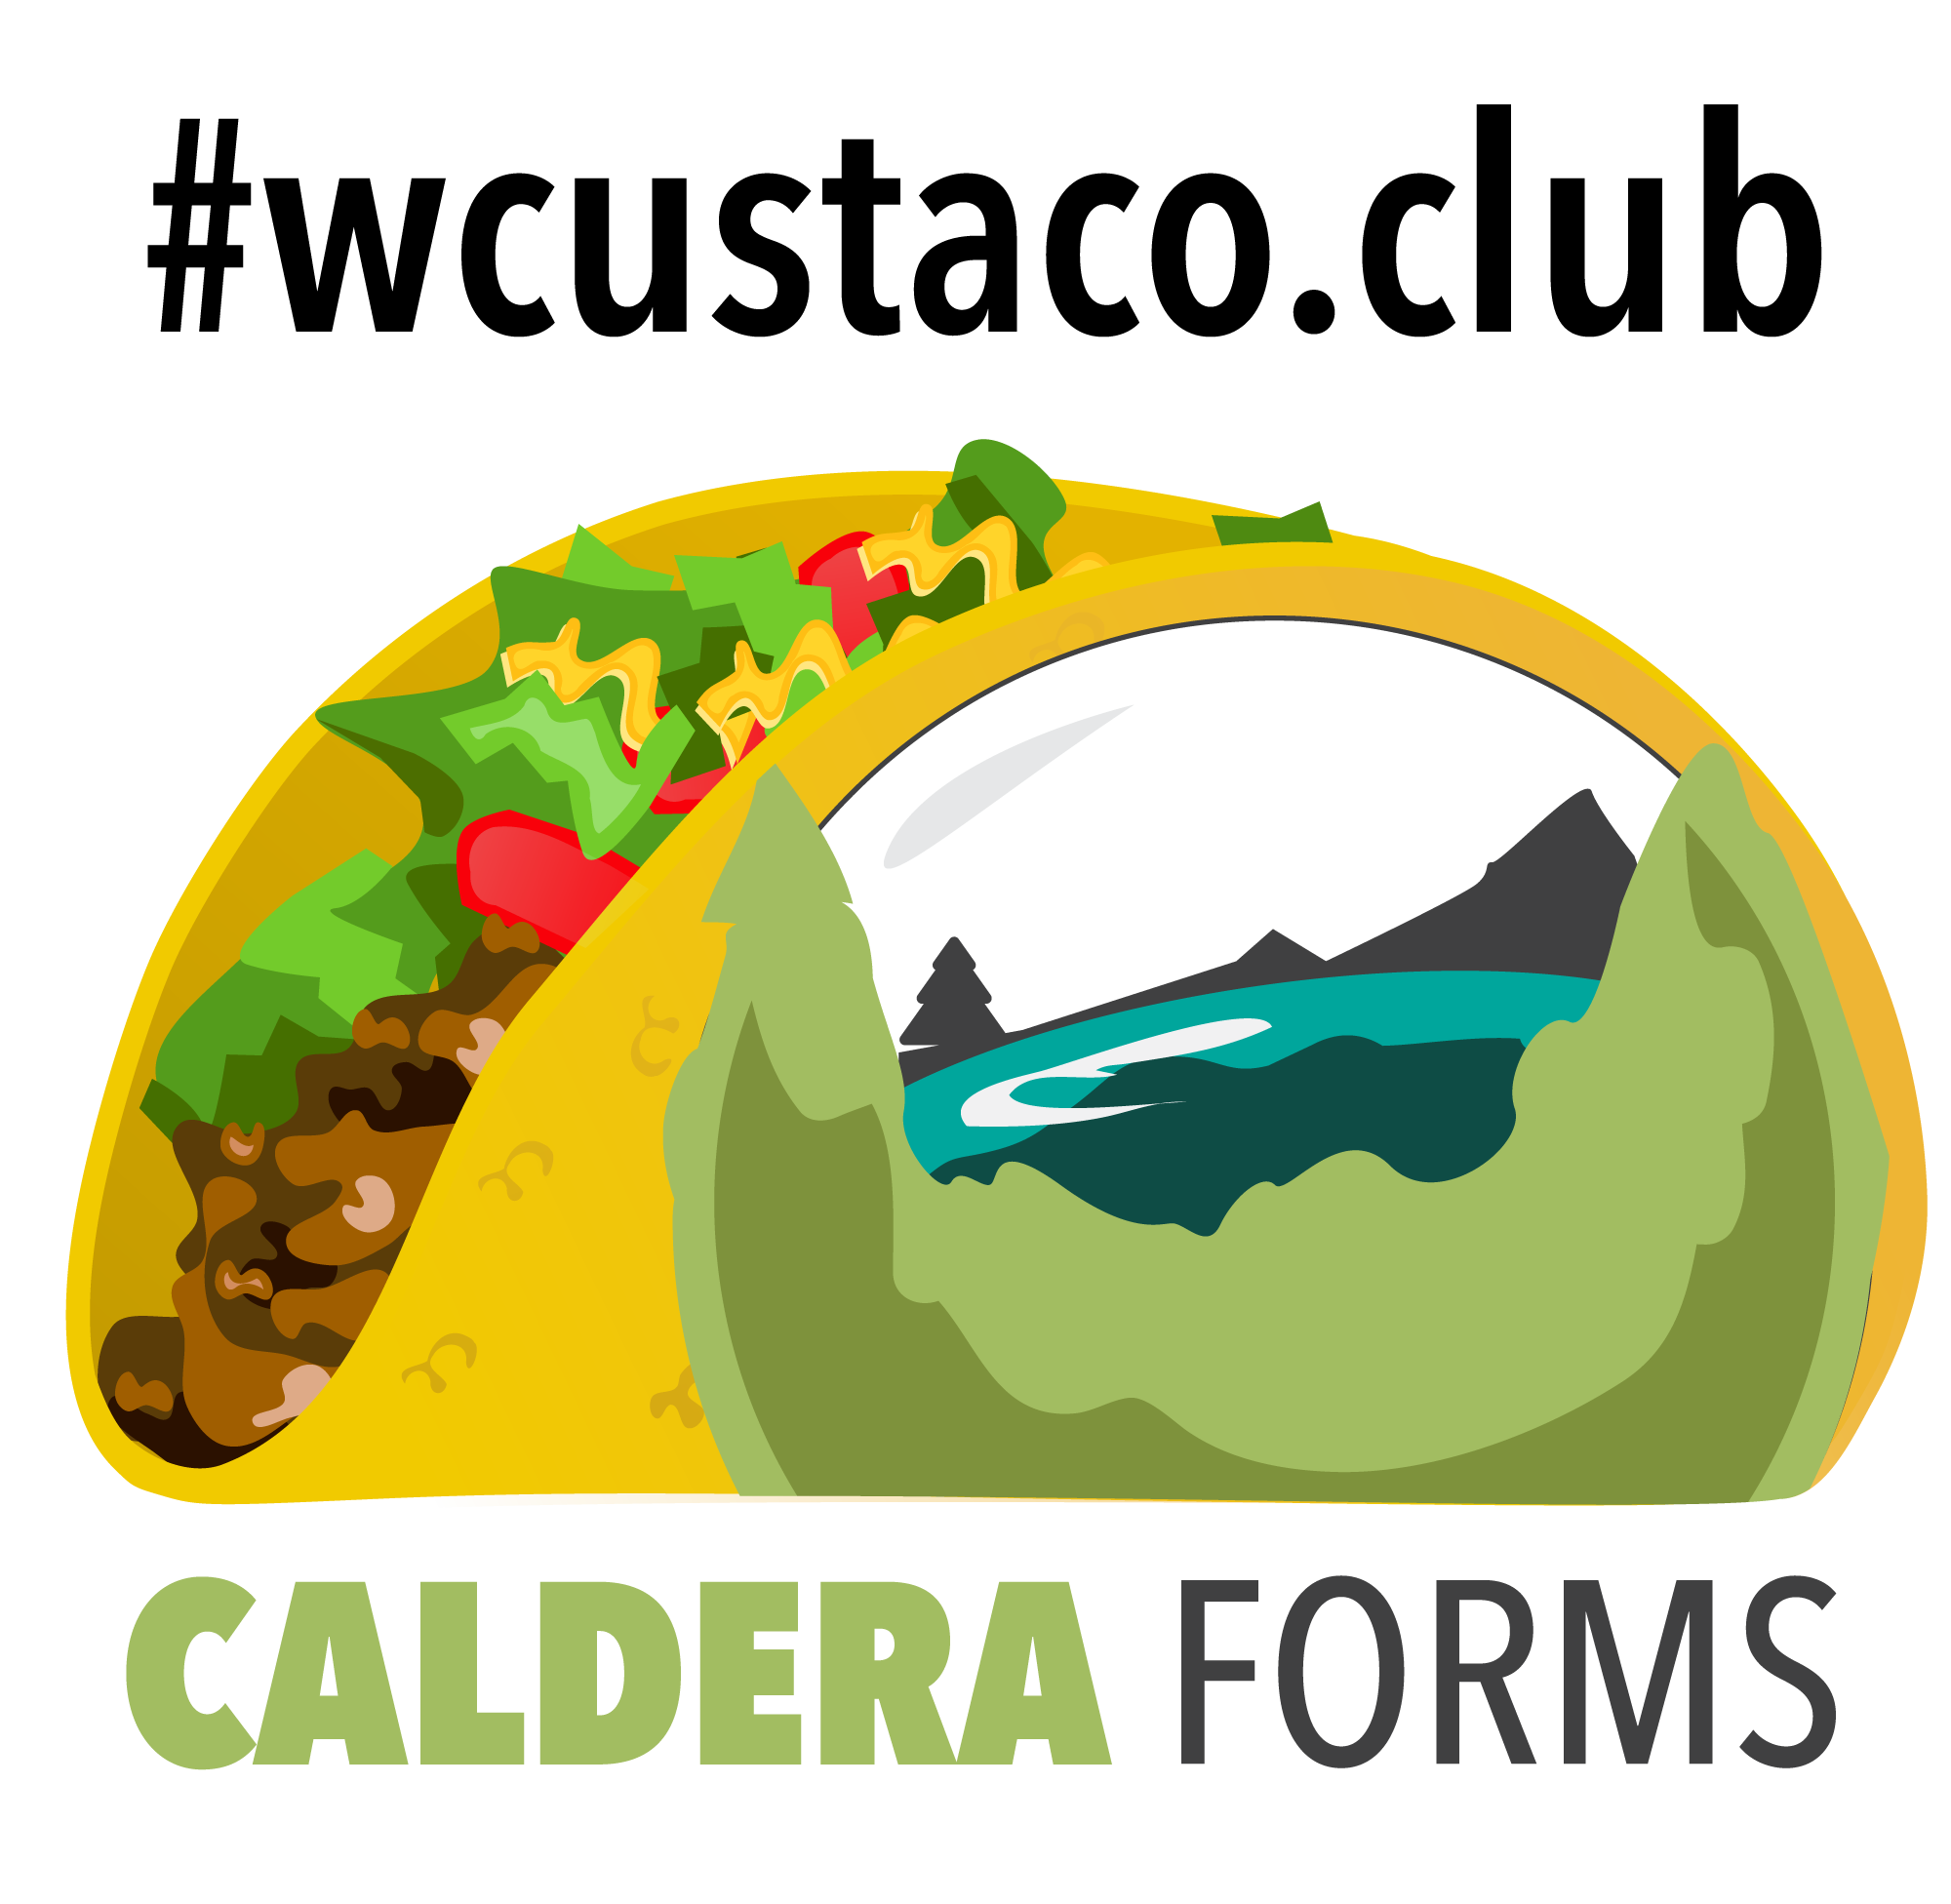 Forms community archives page. Lake clipart caldera